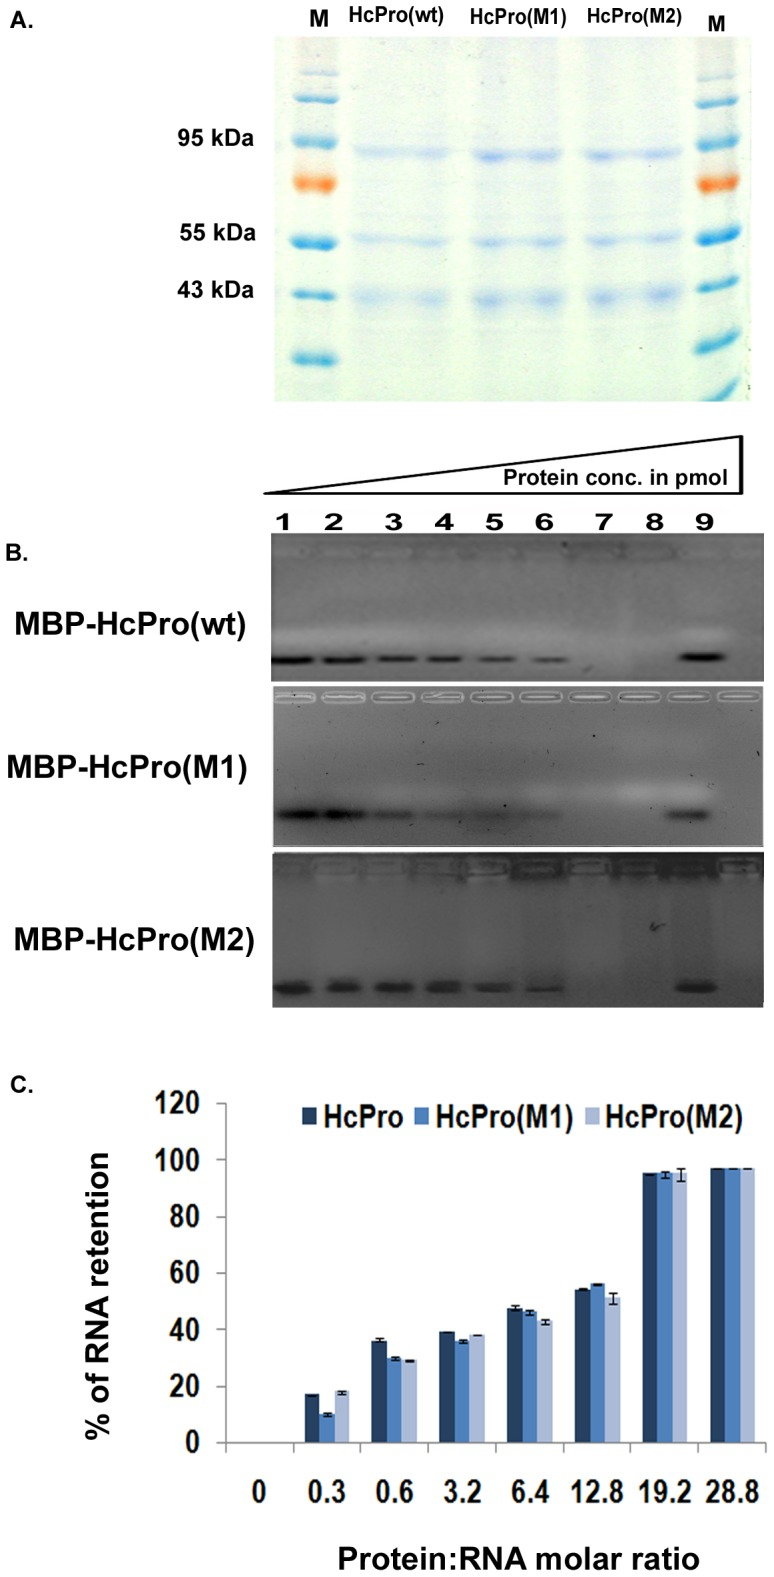 Small RNA binding ability of HcPro and its mutants. Electrophoretic mobility shift assay for wild-type (wt) HcPro and its mutants. A. Purified preparations of HcPro and mutant proteins on Coomassie-stained 12% SDS-PAGE purified from Escherichia coli BL21 cells. MBP-HcPro/mutants fusion protein (92.5 kDa) B. Electrophoretic mobility shift assay for HcPro and its mutants. Different concentrations (lane 2–8) of purified HcPro or its mutants were incubated with 30 pmol of synthetic double stranded small RNA (siRNA171) for 30 minutes at 25°C. Lane 1, 30 pmol of synthetic, double-stranded small RNAs (siRNA171) without any protein added; lane 9, 30 pmol of synthetic, double-stranded small RNAs (siRNA171) incubated with MBP for 30 minutes as control. C. Graphical representation of the RNA binding results for the wt HcPro and its mutants. % RNA retention (determined by band intensities) was plotted against protein:RNA molar ratios in the binding assays of HcPro and its mutants with double stranded siRNA171. The data are means ±SD of four repeat assays. The significance level of the data are shown by asterisks (* P